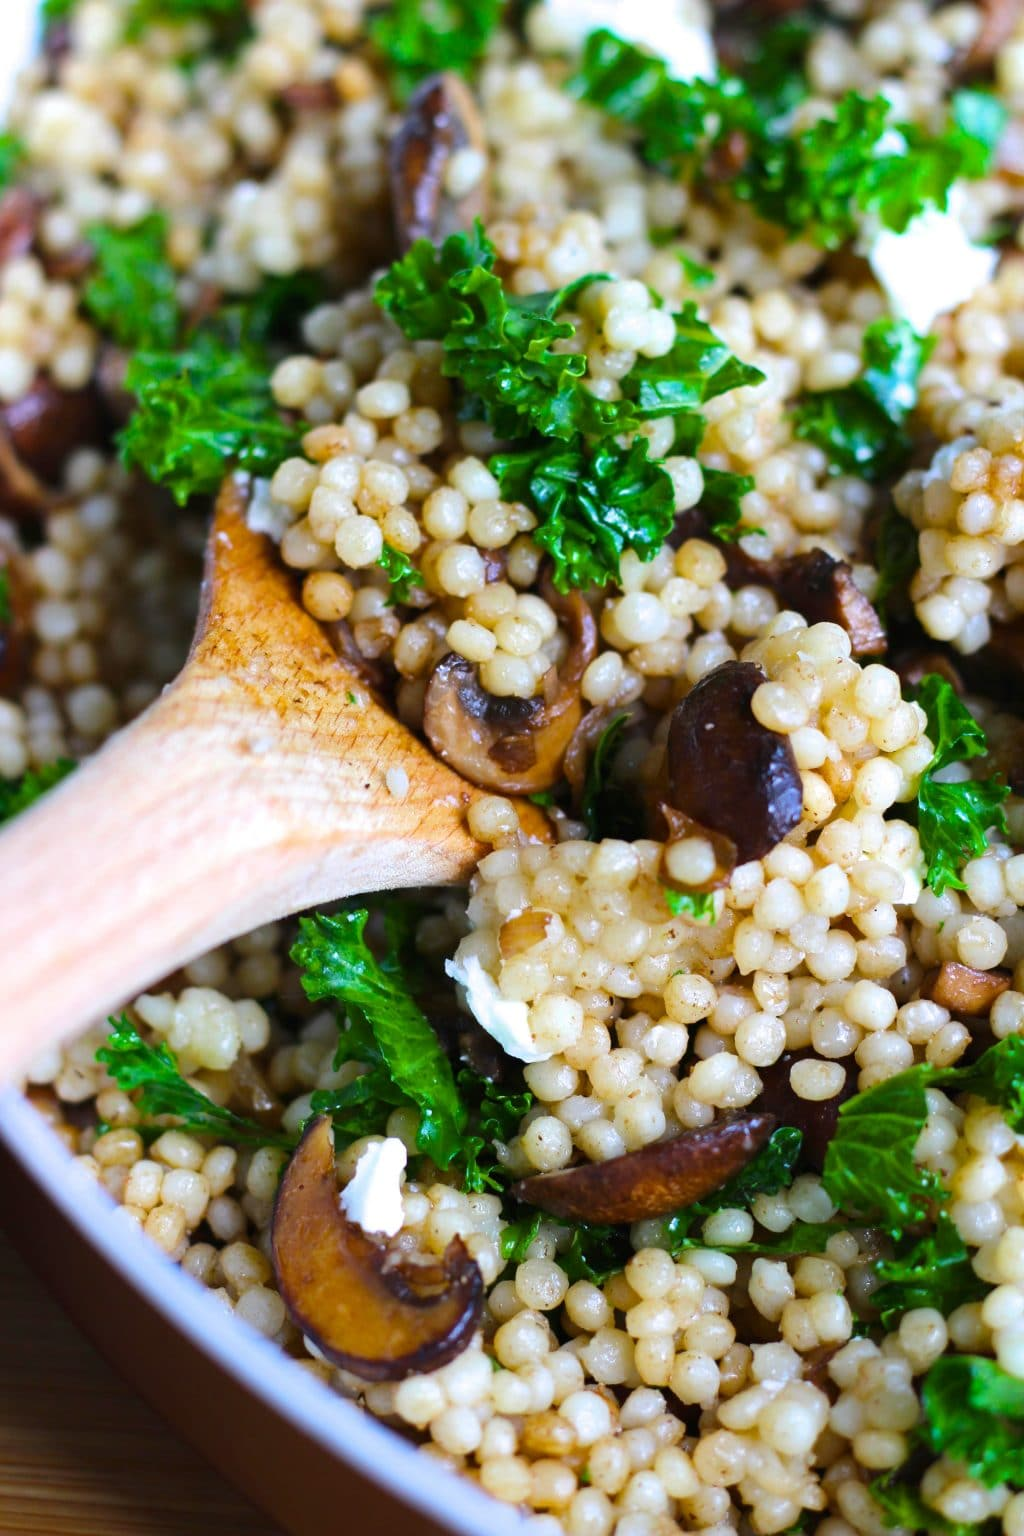 A wooden spoon scooping mushroom couscous out of a pan.